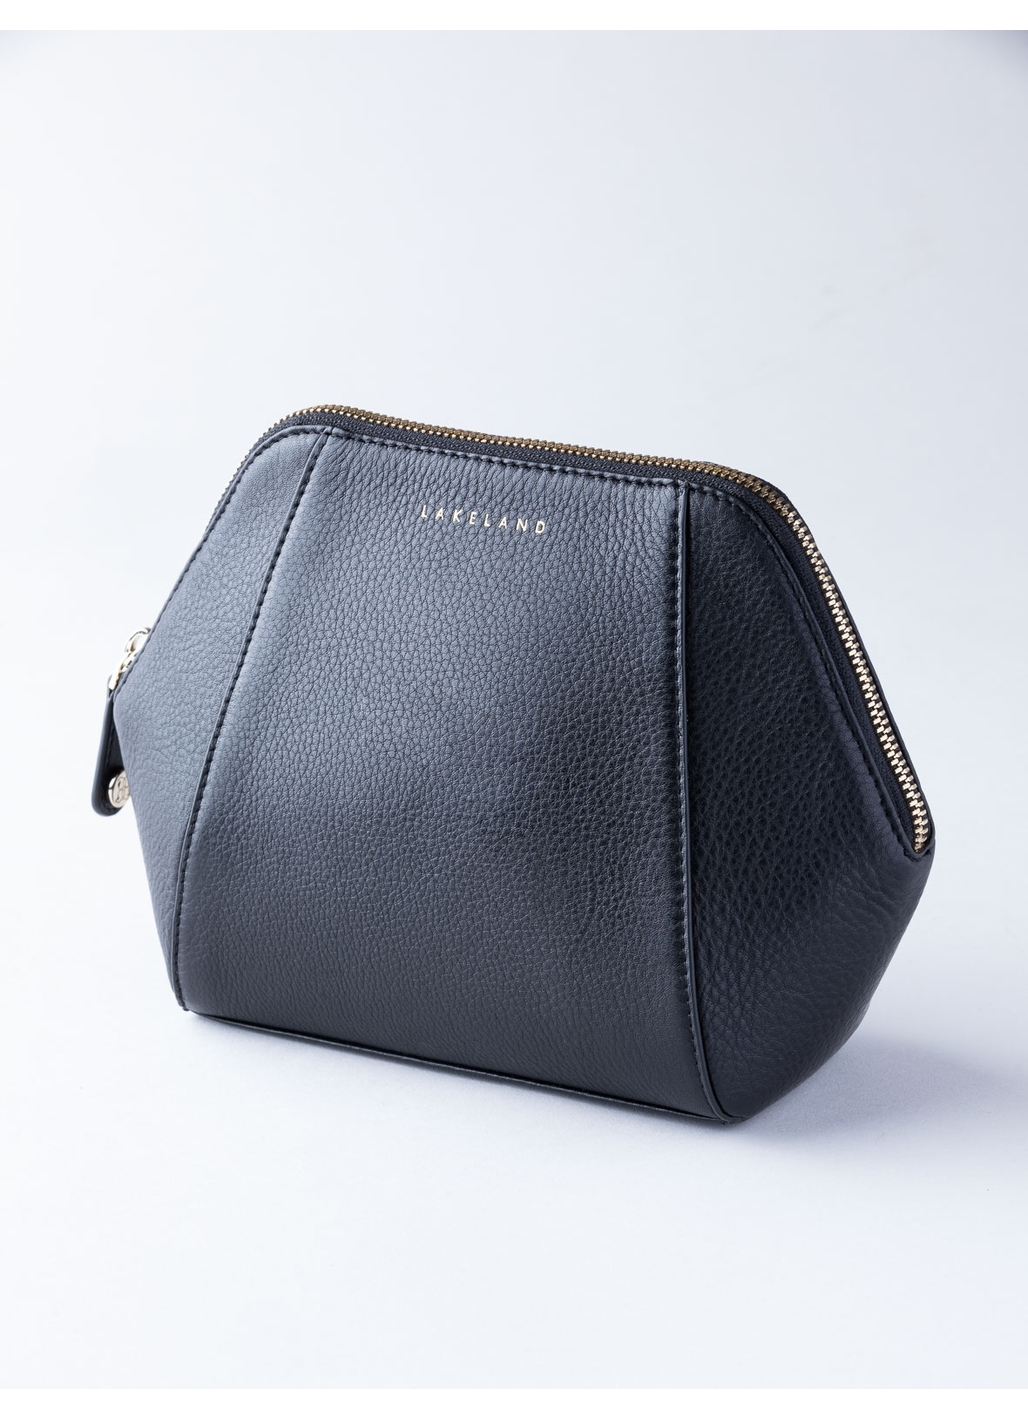 Wray Leather Cosmetic Bag in Black